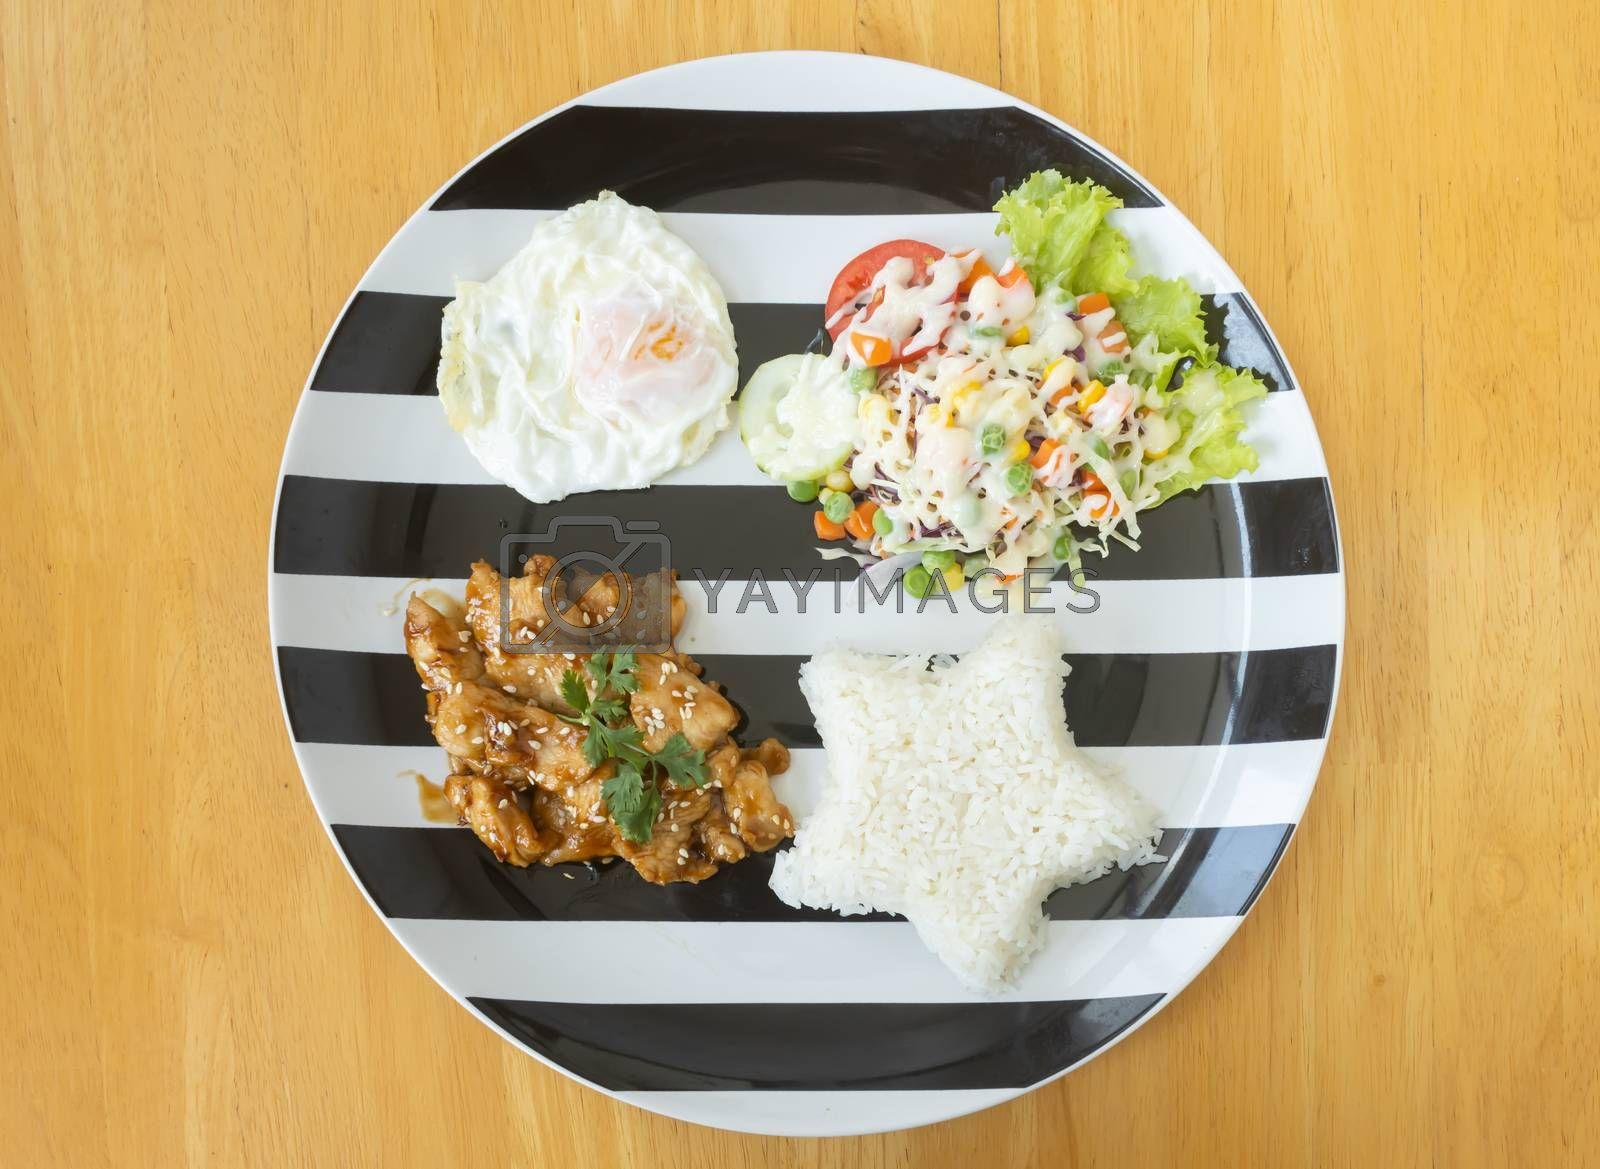 Fried Chicken with Garlic and Pepper and Fried Egg and Vegan Salad and Rice in Dish on Wood Table with Natural Light on Flatlay View